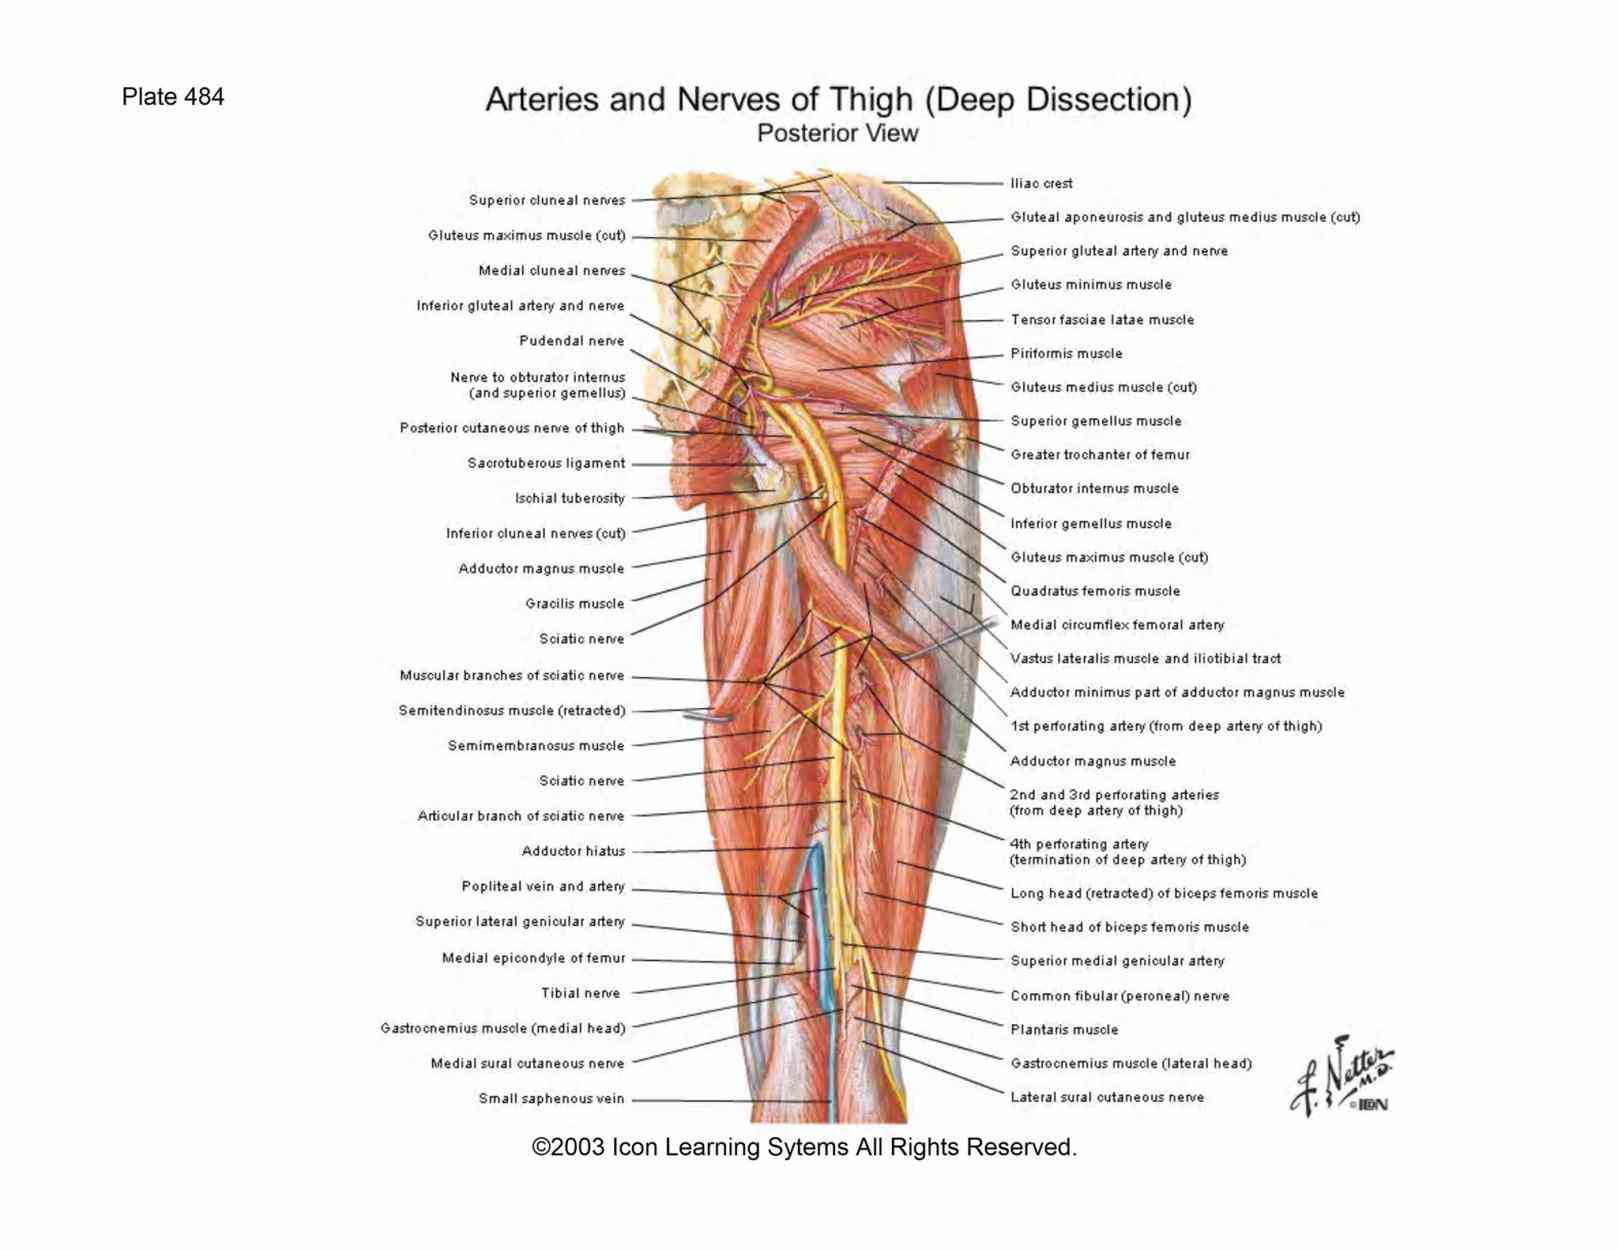 triangular area bounded by terms of surface anatomy sciatic nerve leaves pelvis little more  httpwwwanatomyzonecom Anatomy Of The Gluteal